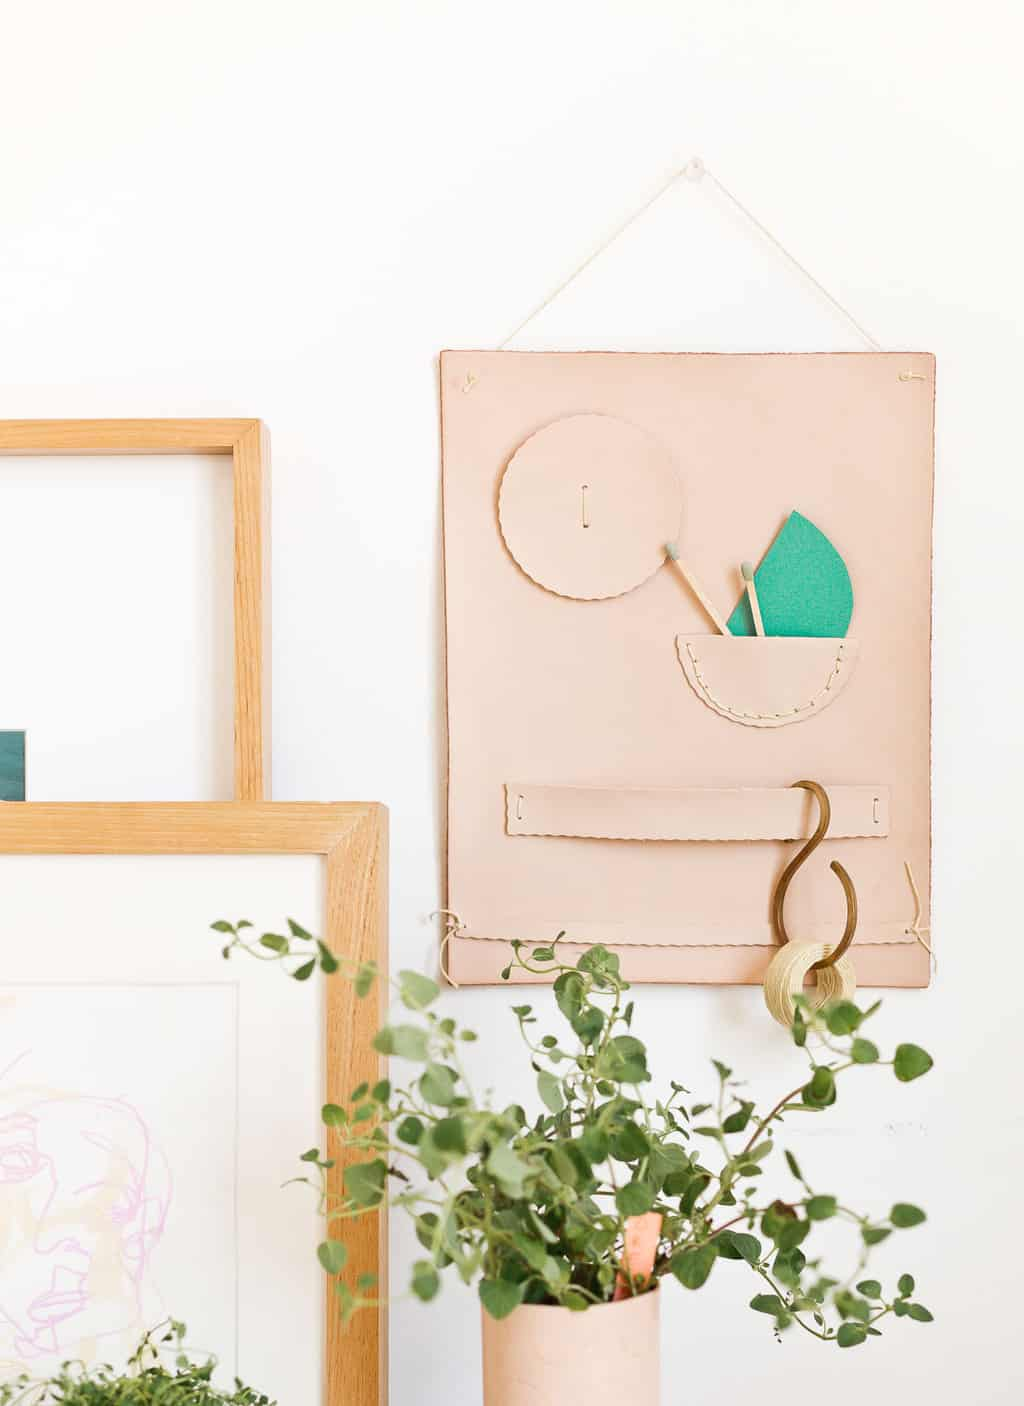 A leather wall organizer hangs on the wall with plants surrounding it.